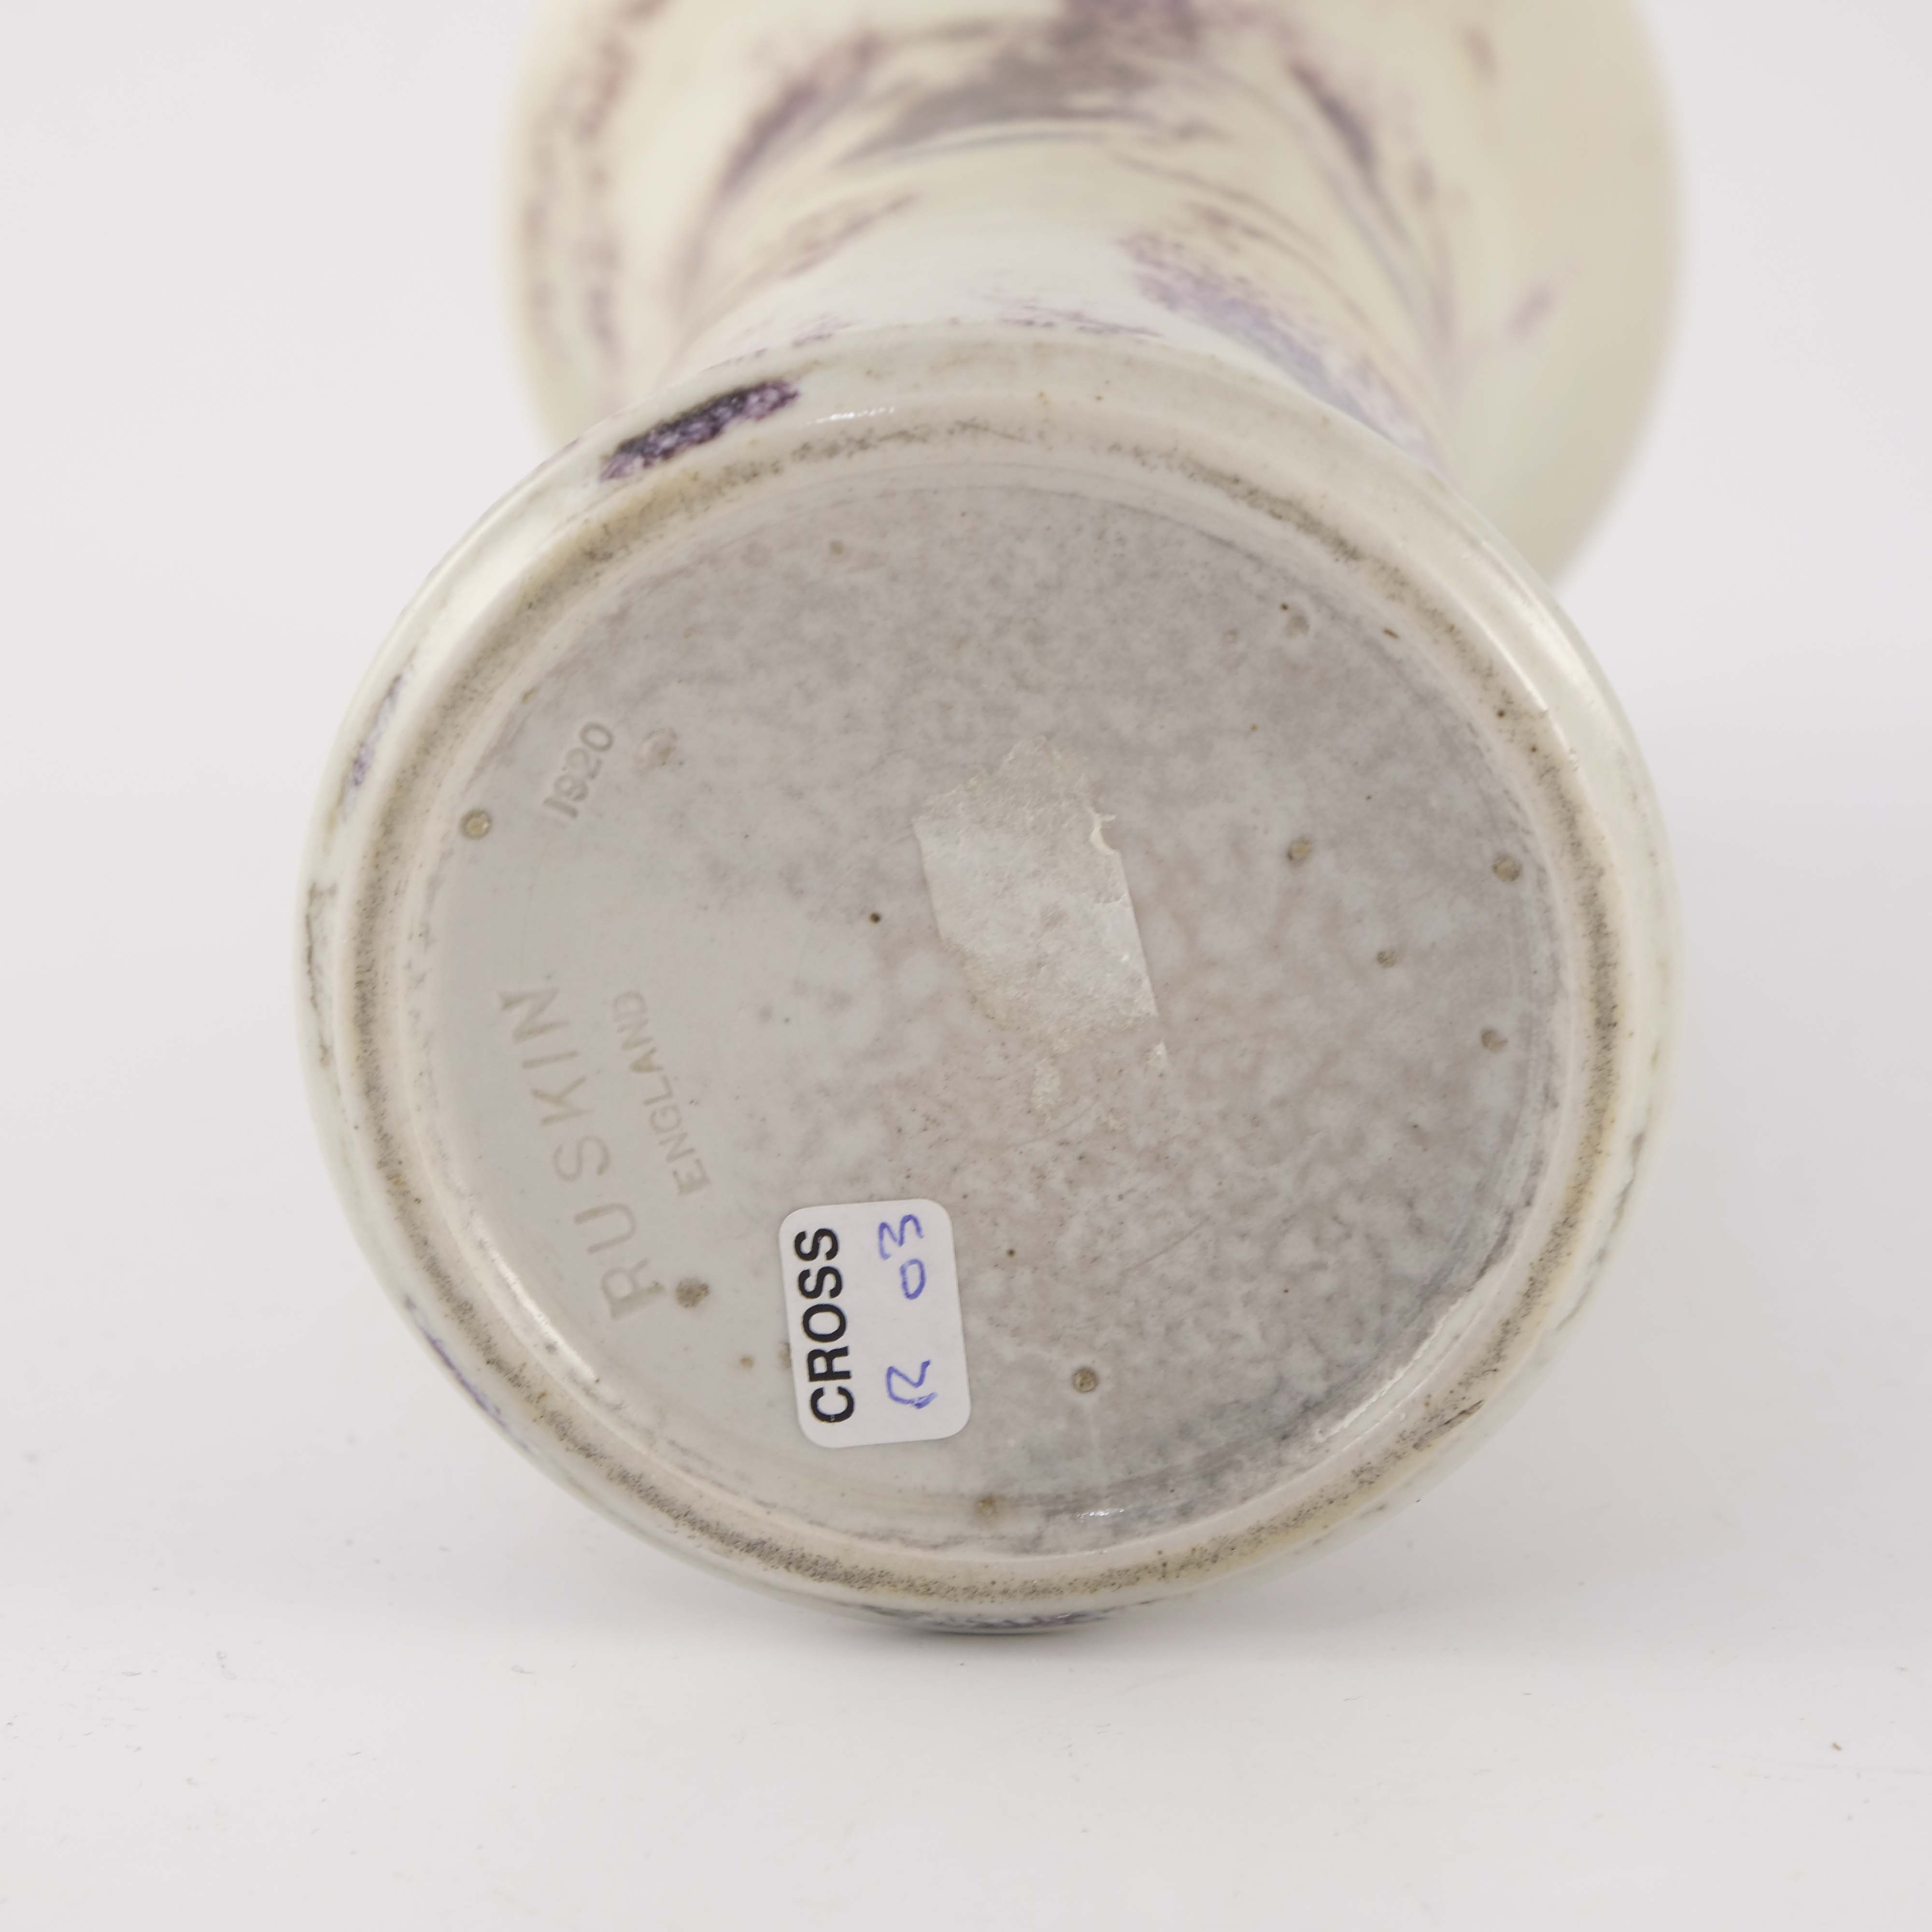 Ruskin Pottery, a High Fired Lily vase - Image 4 of 4